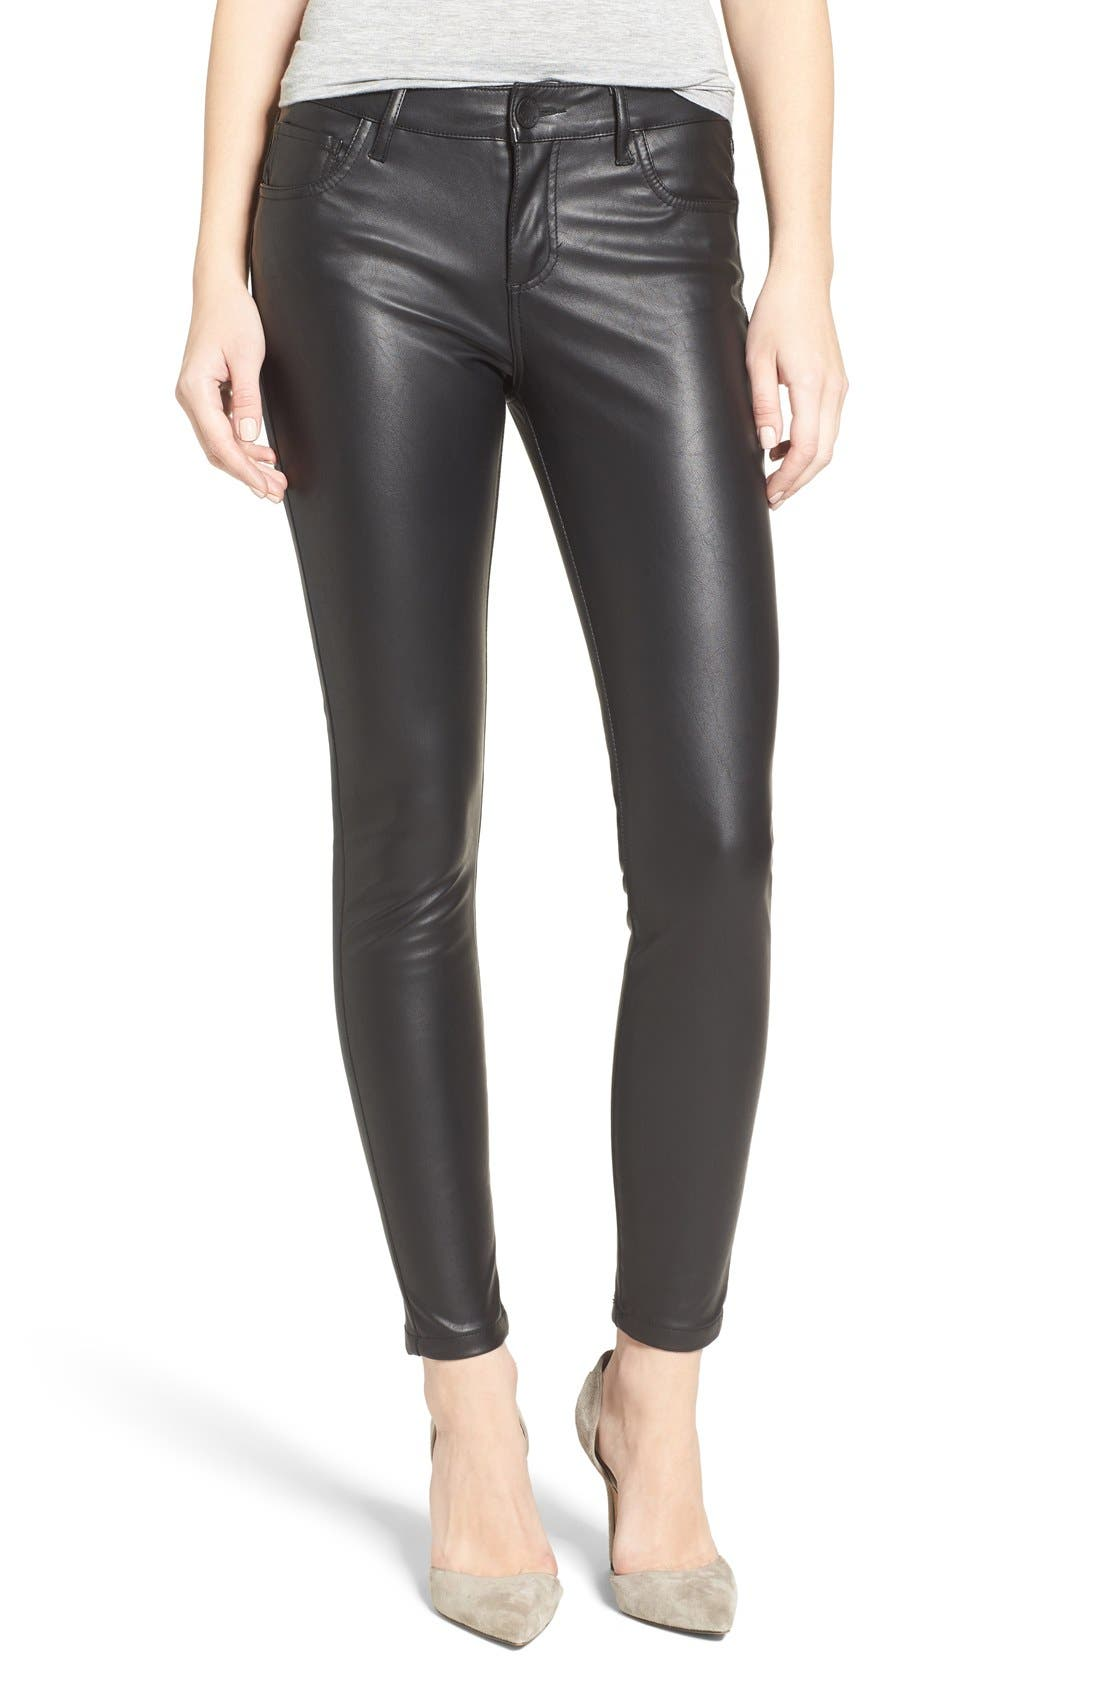 Alternate Image 1 Selected - KUT from the Kloth Brigitte Faux Leather Pants